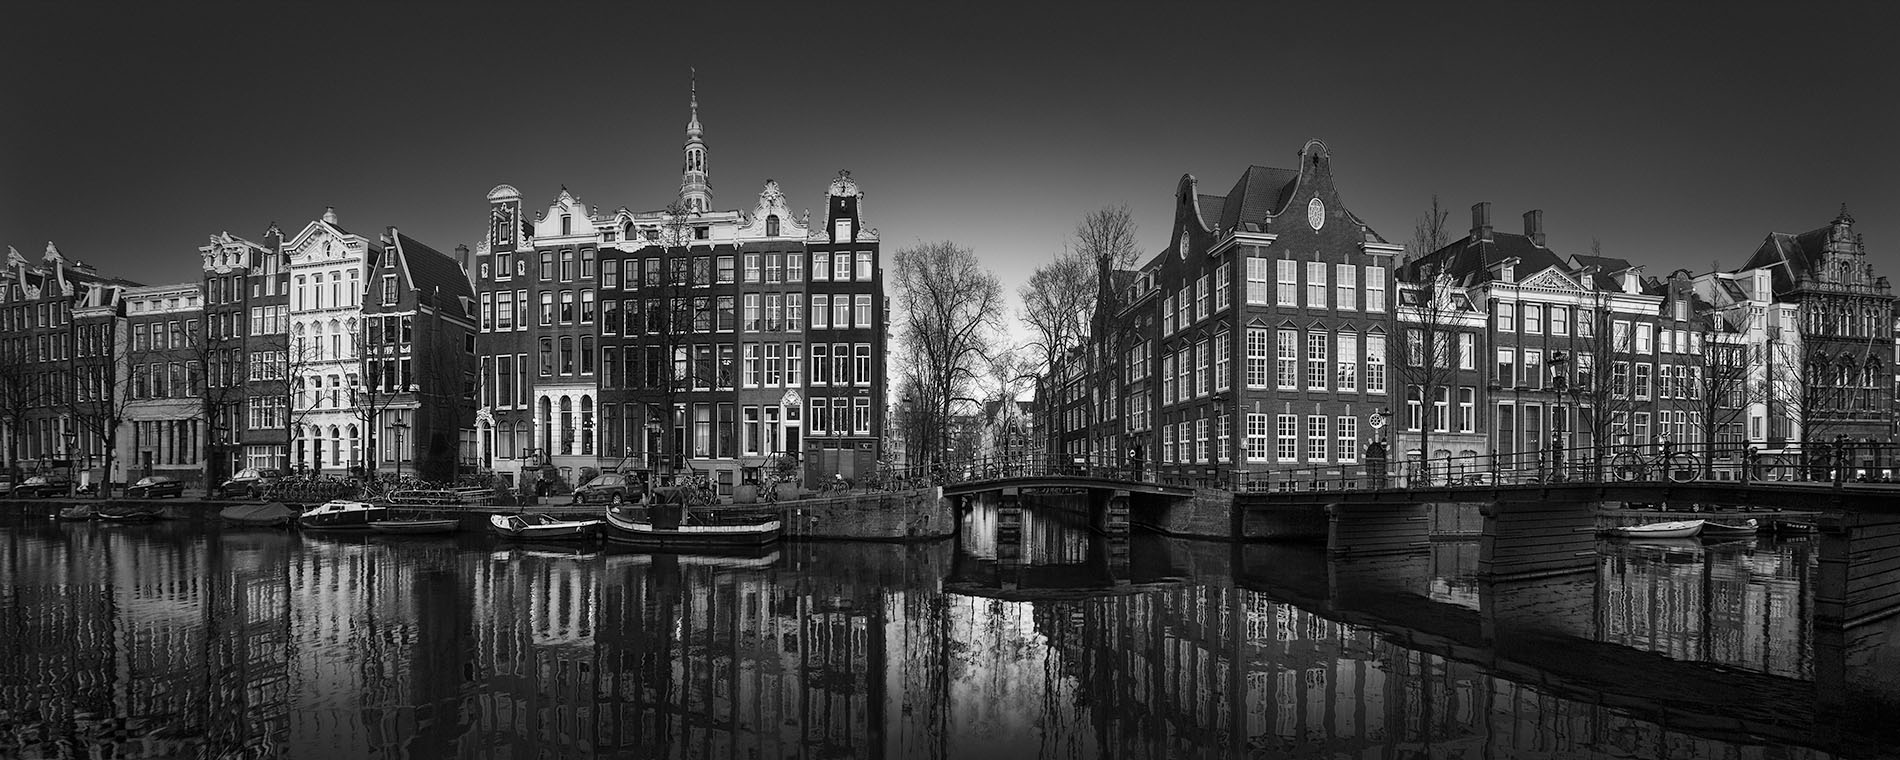 A Tale of the Past II - Singel Canal Amsterdam - © Julia Anna Gospodarou 2017 - Award-Winning Architectural Photography